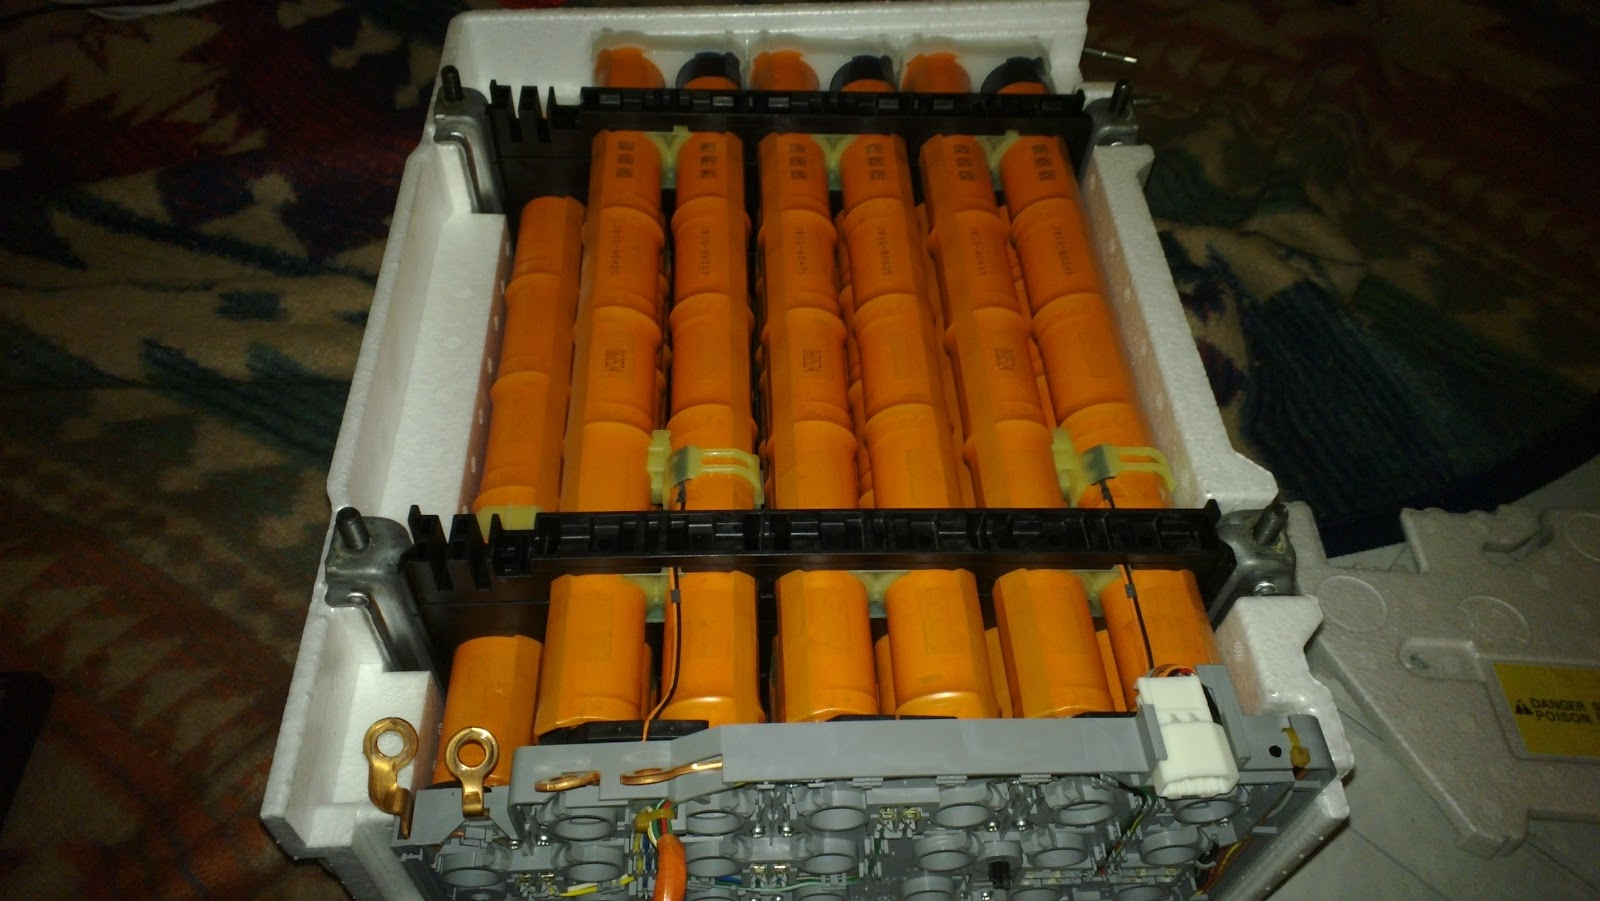 Another View Of The Battery Pack After Popping Out Steel Cover Two Sticks On Top And One Stick In Bottom Row Has A Thermistor Attached